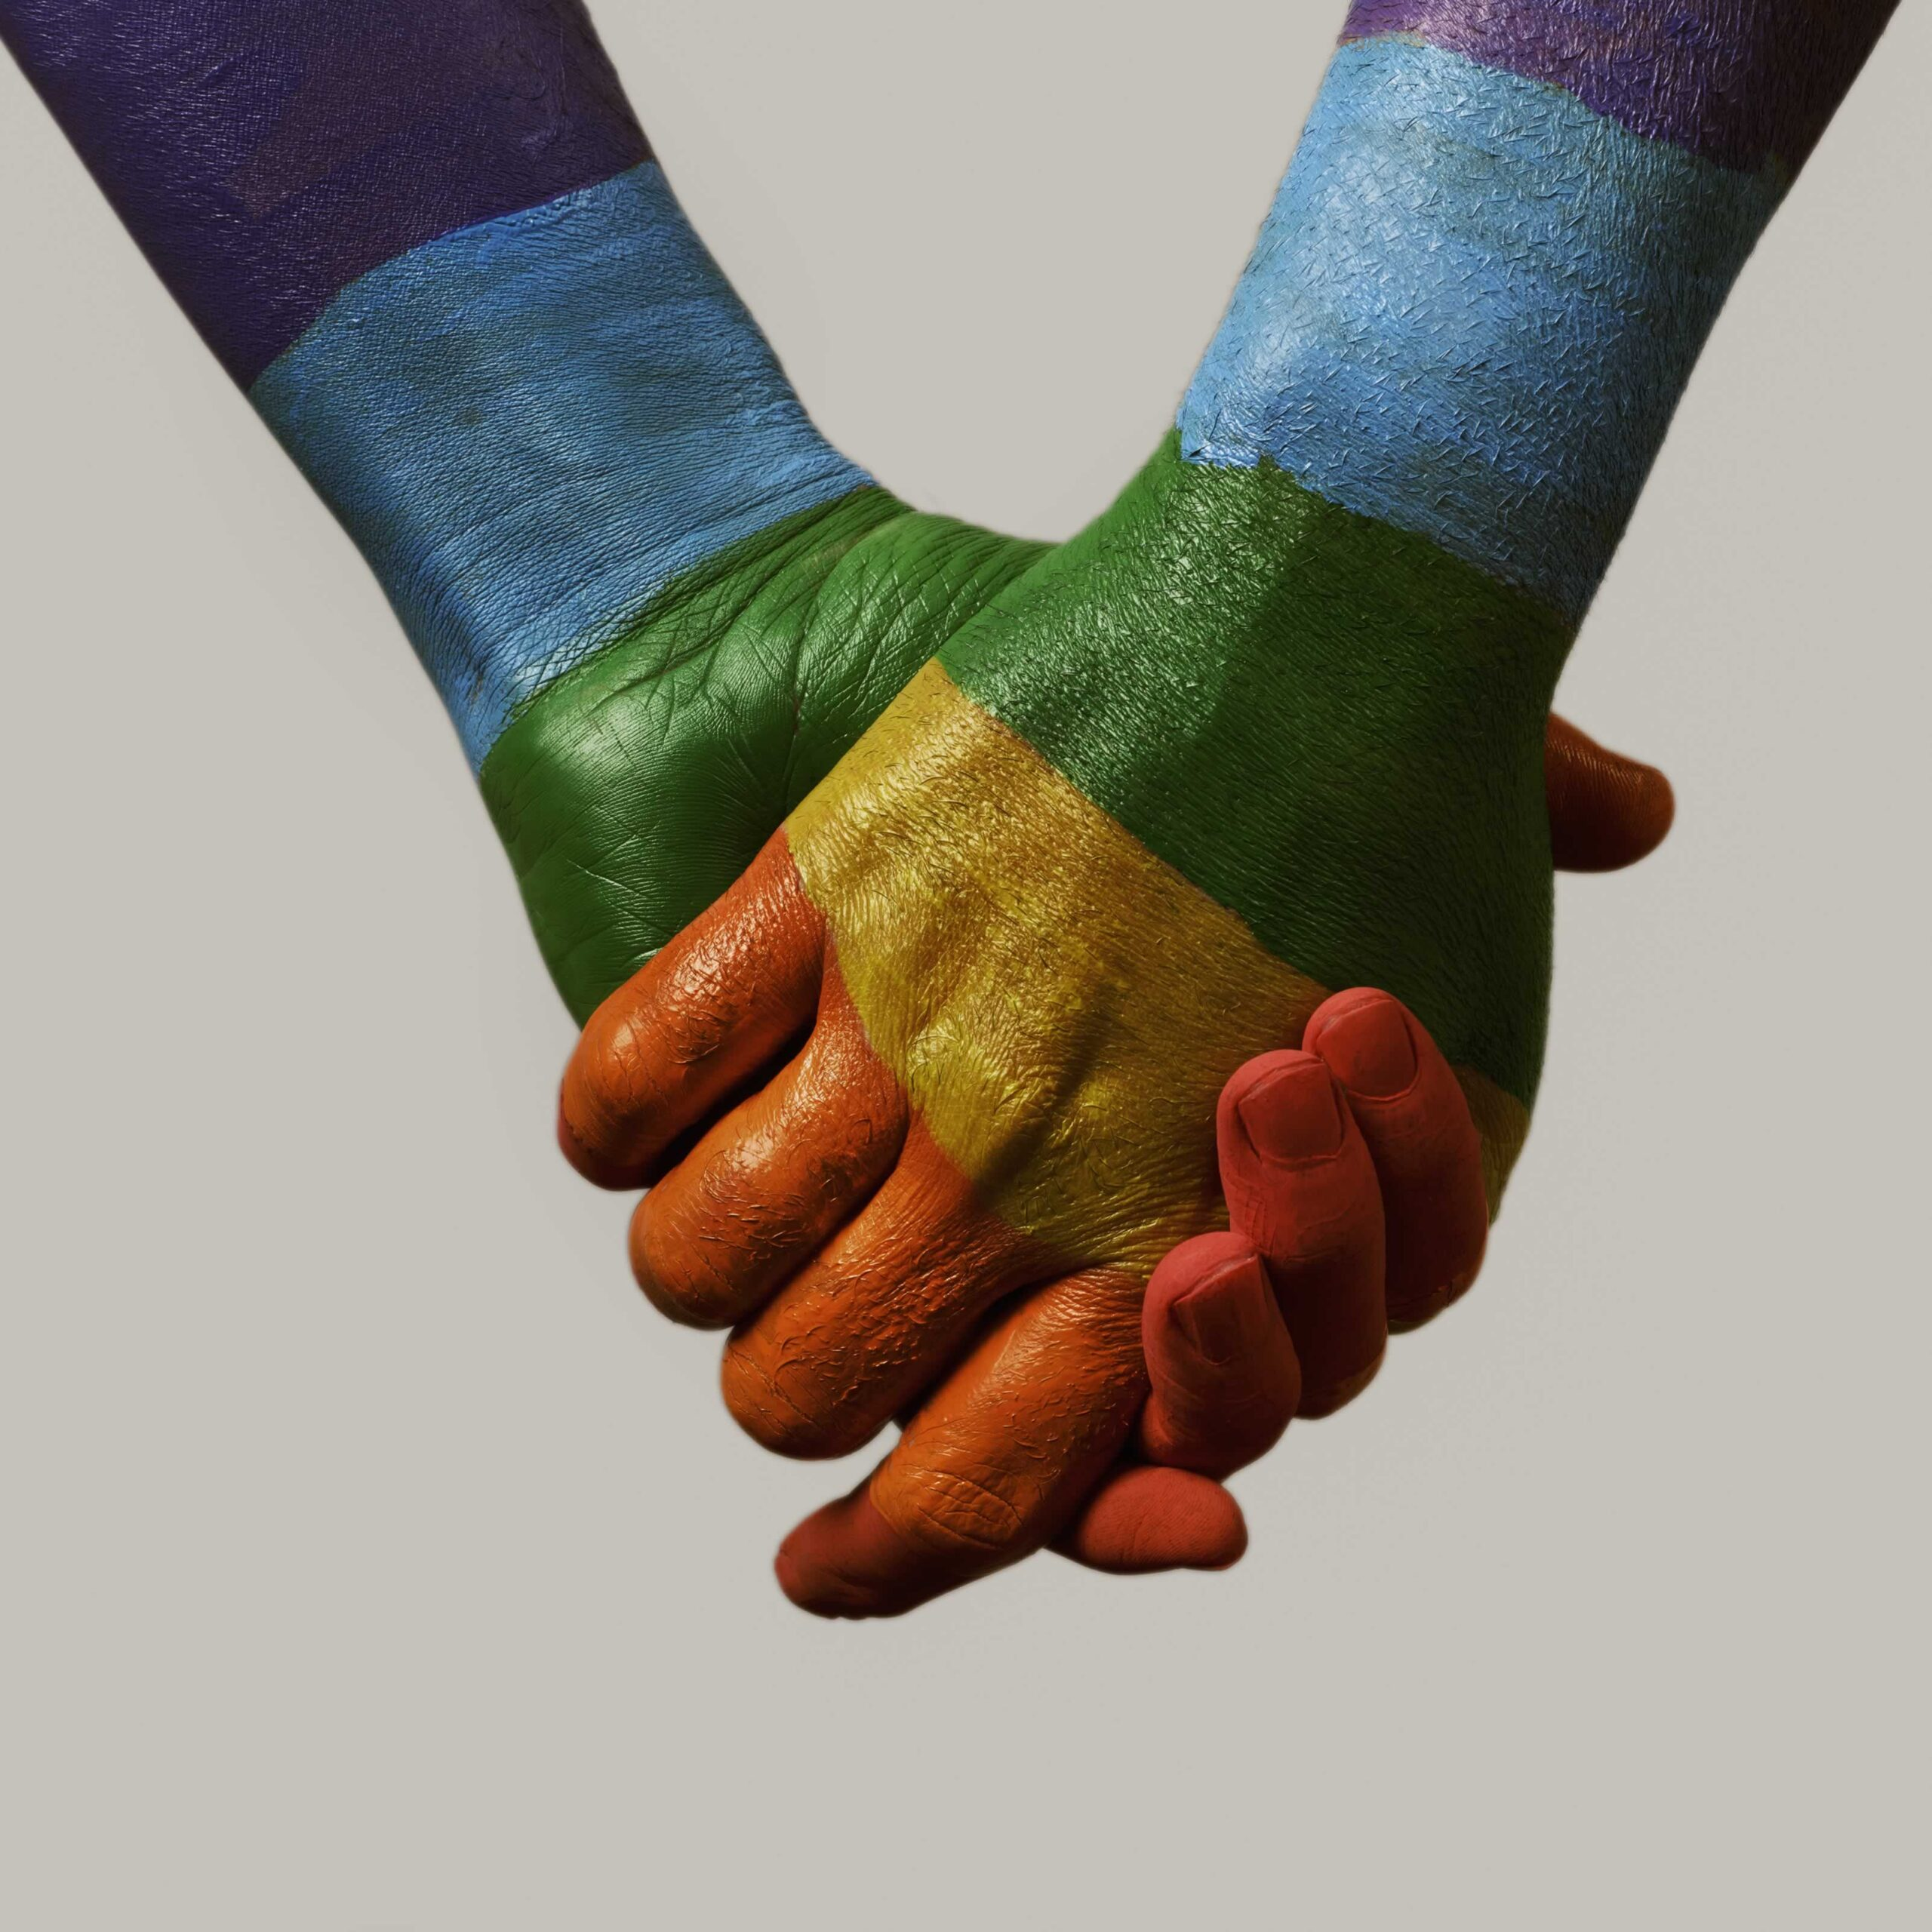 Arms of two people holding hands panted in the colours of the pride flag.